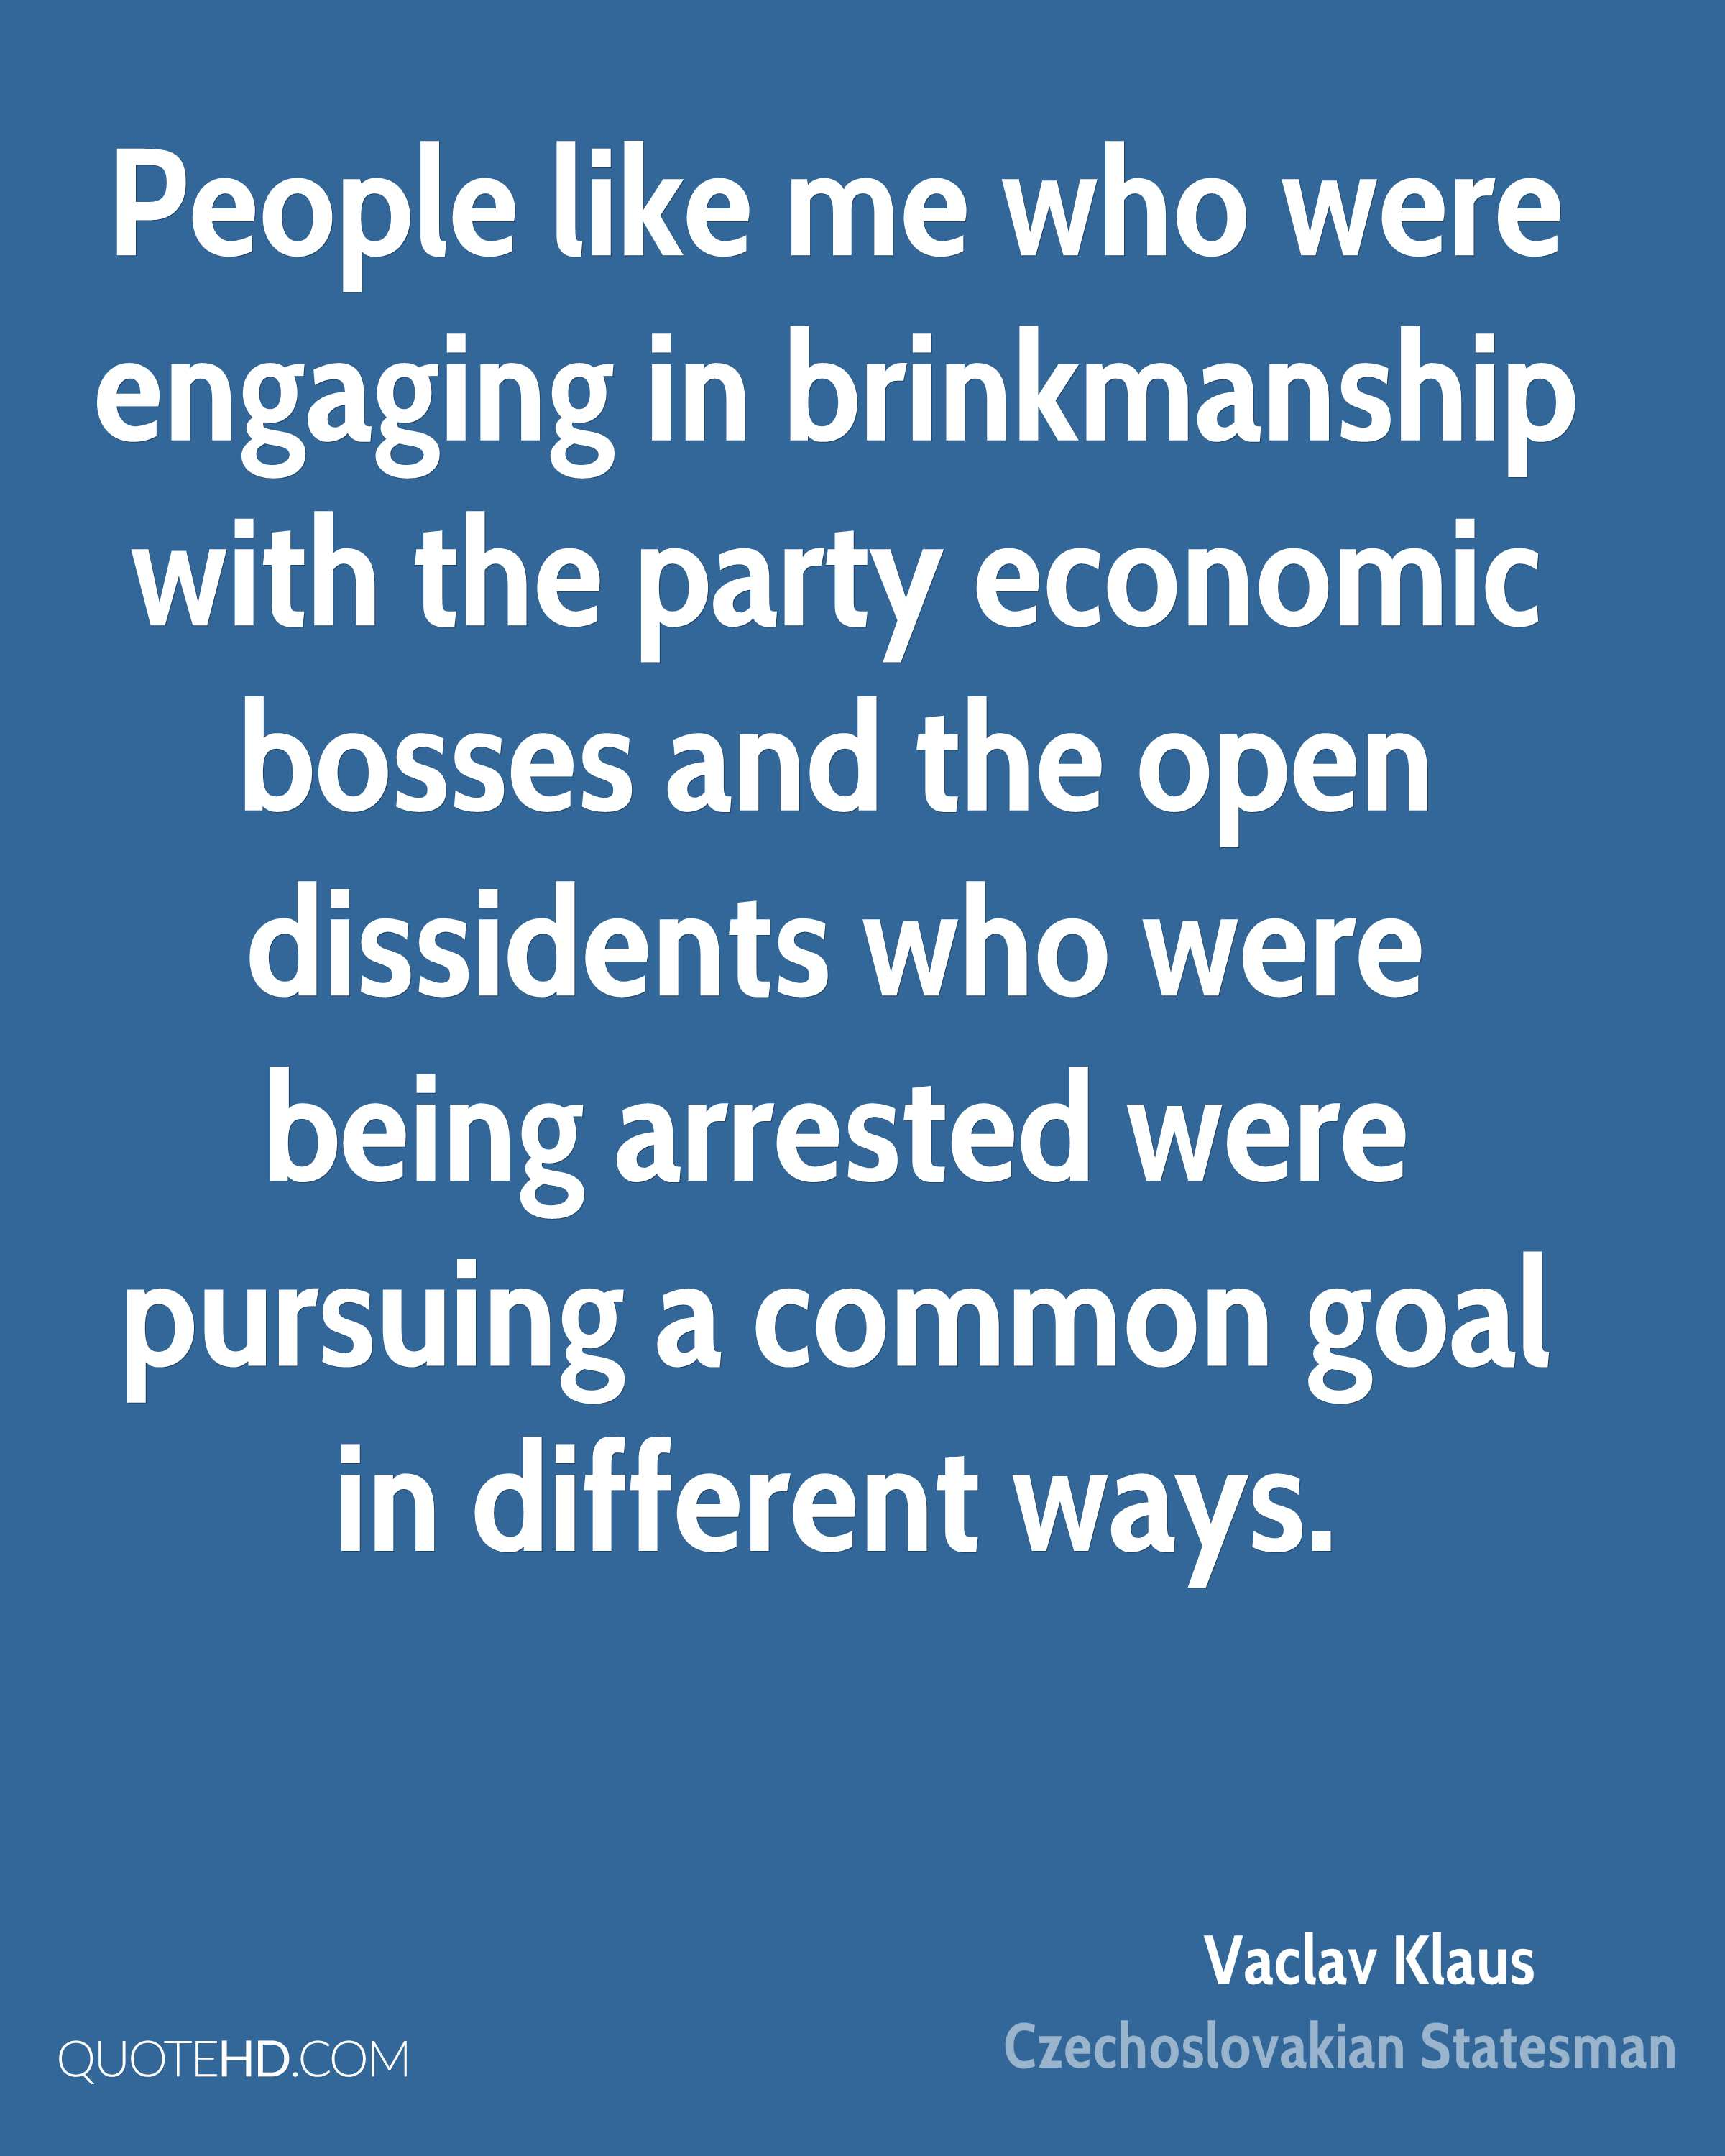 People like me who were engaging in brinkmanship with the party economic bosses and the open dissidents who were being arrested were pursuing a common goal in different ways.